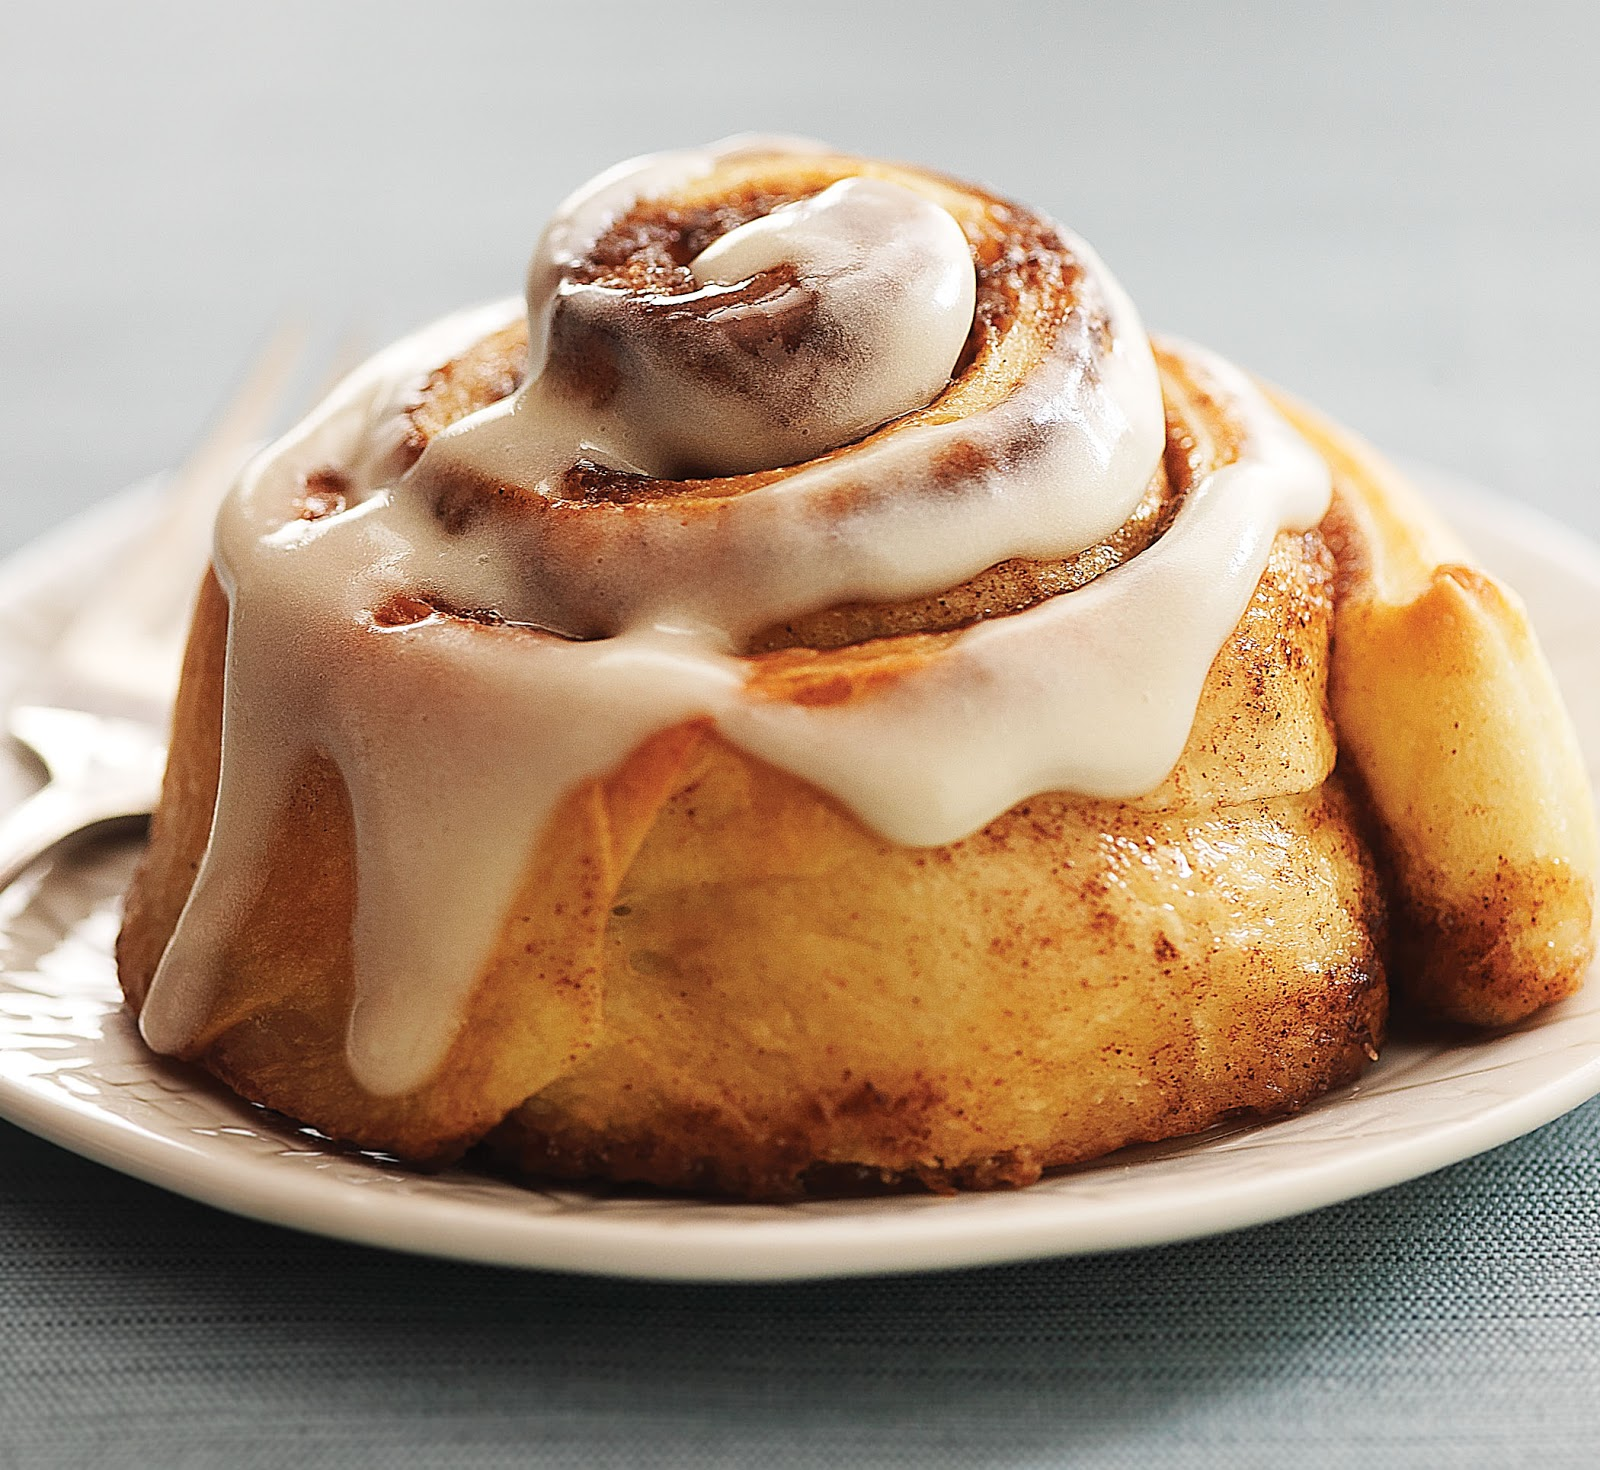 ALFRESCO: The 12 Days of Cinnamon Rolls